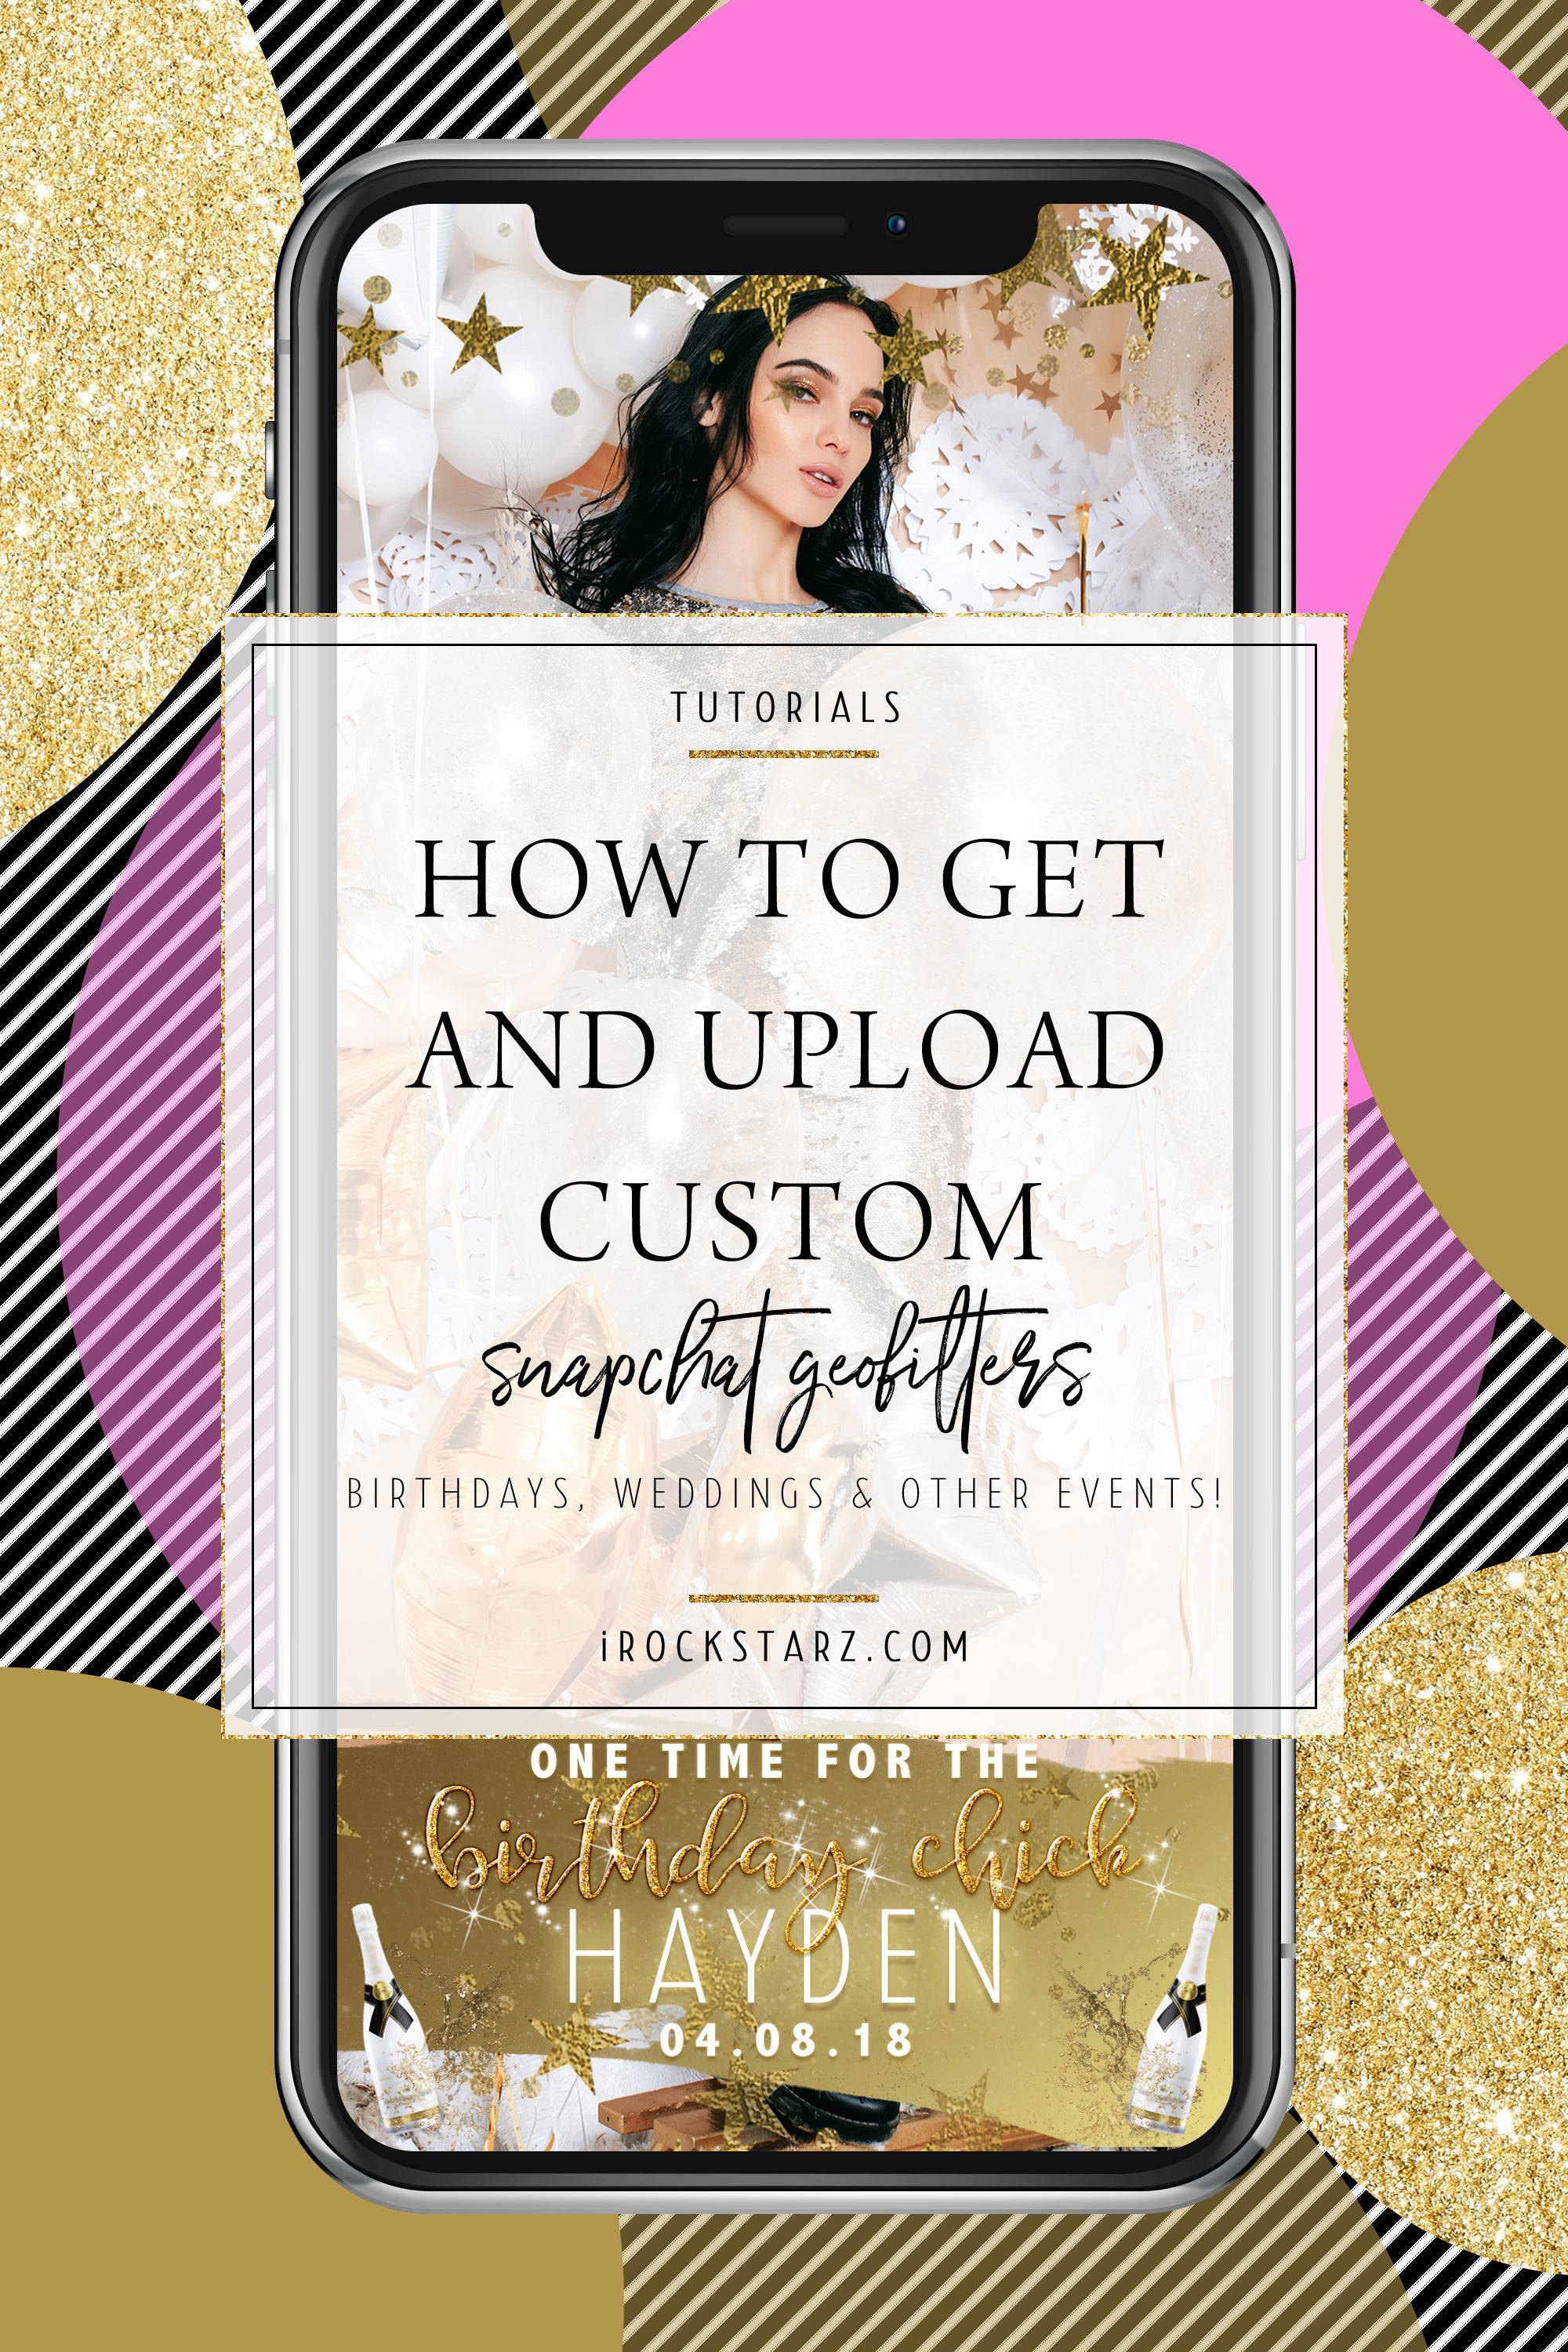 How to Get and Upload Custom Snapchat Geofilters